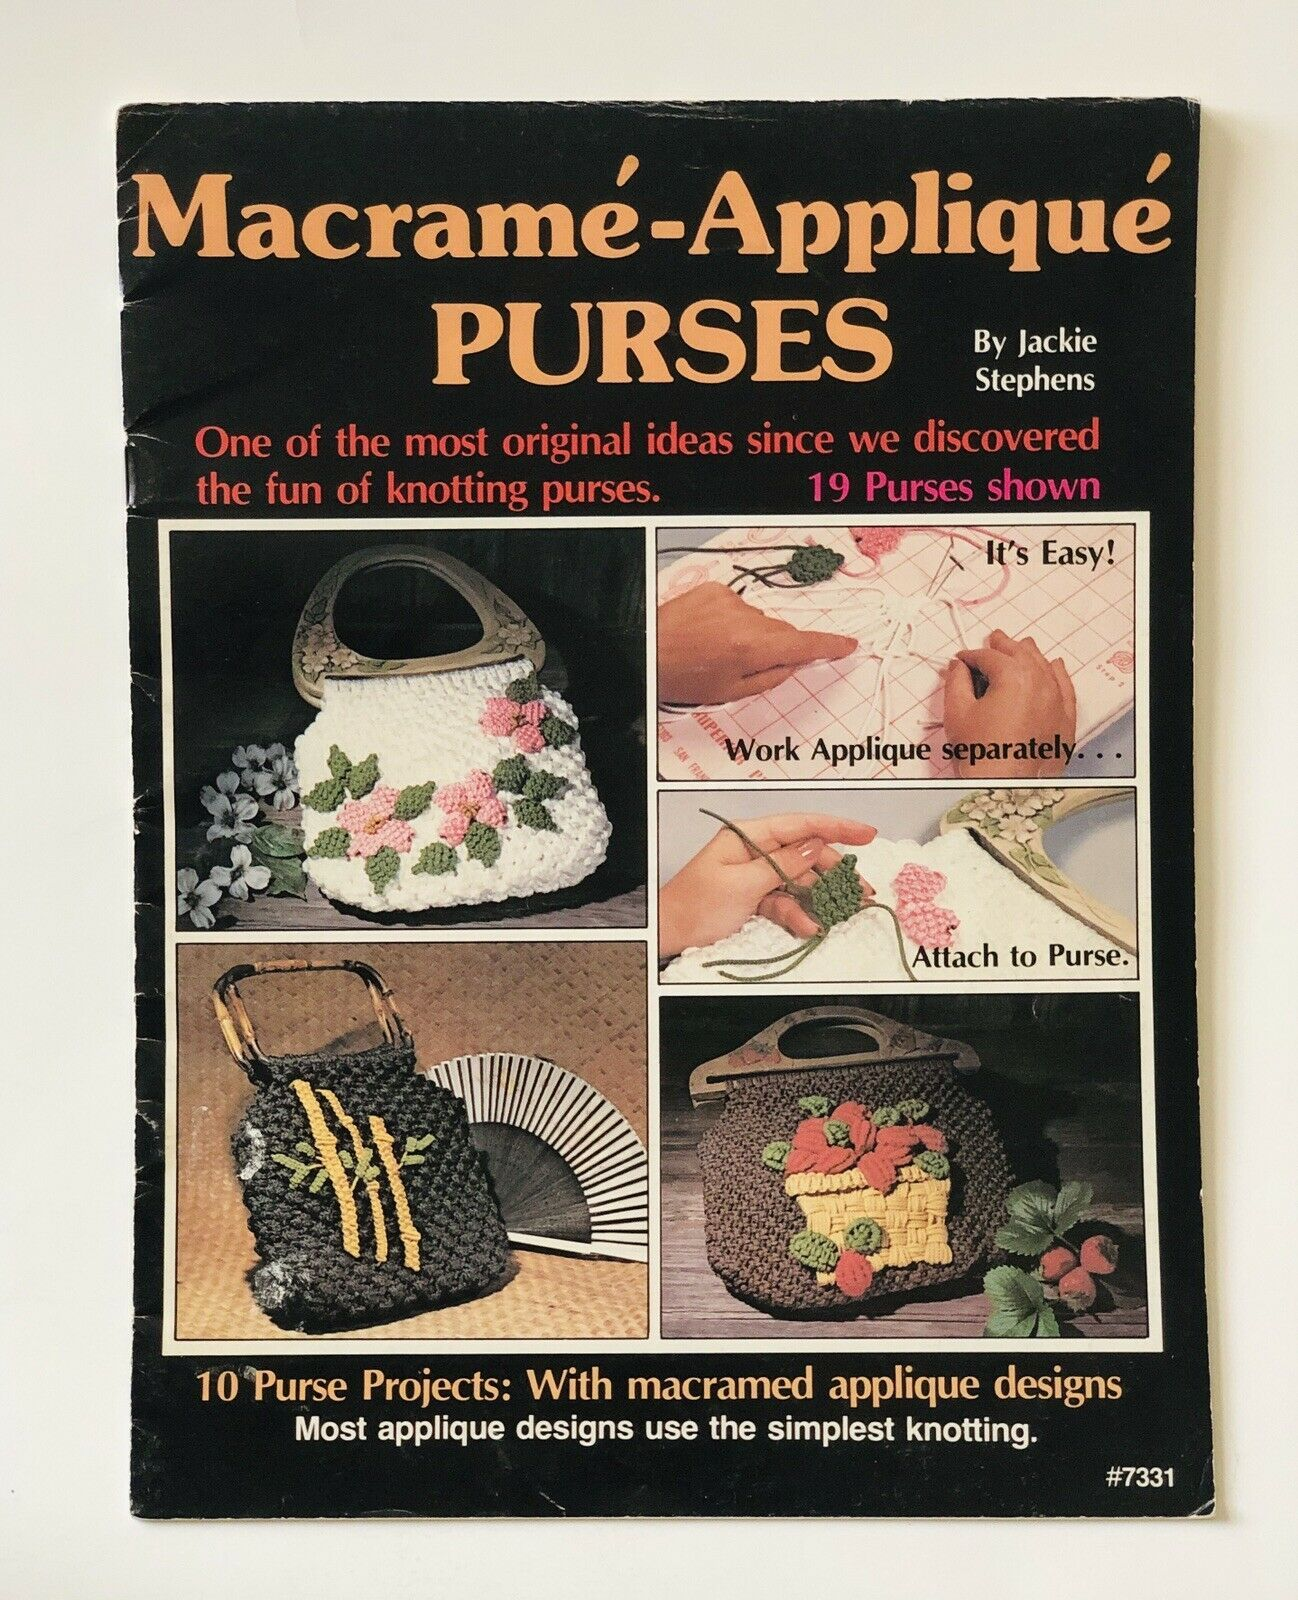 Macrame Appliqué Purses Guide Book By Jackie Stephens 19 Knotting Patterns Ideas